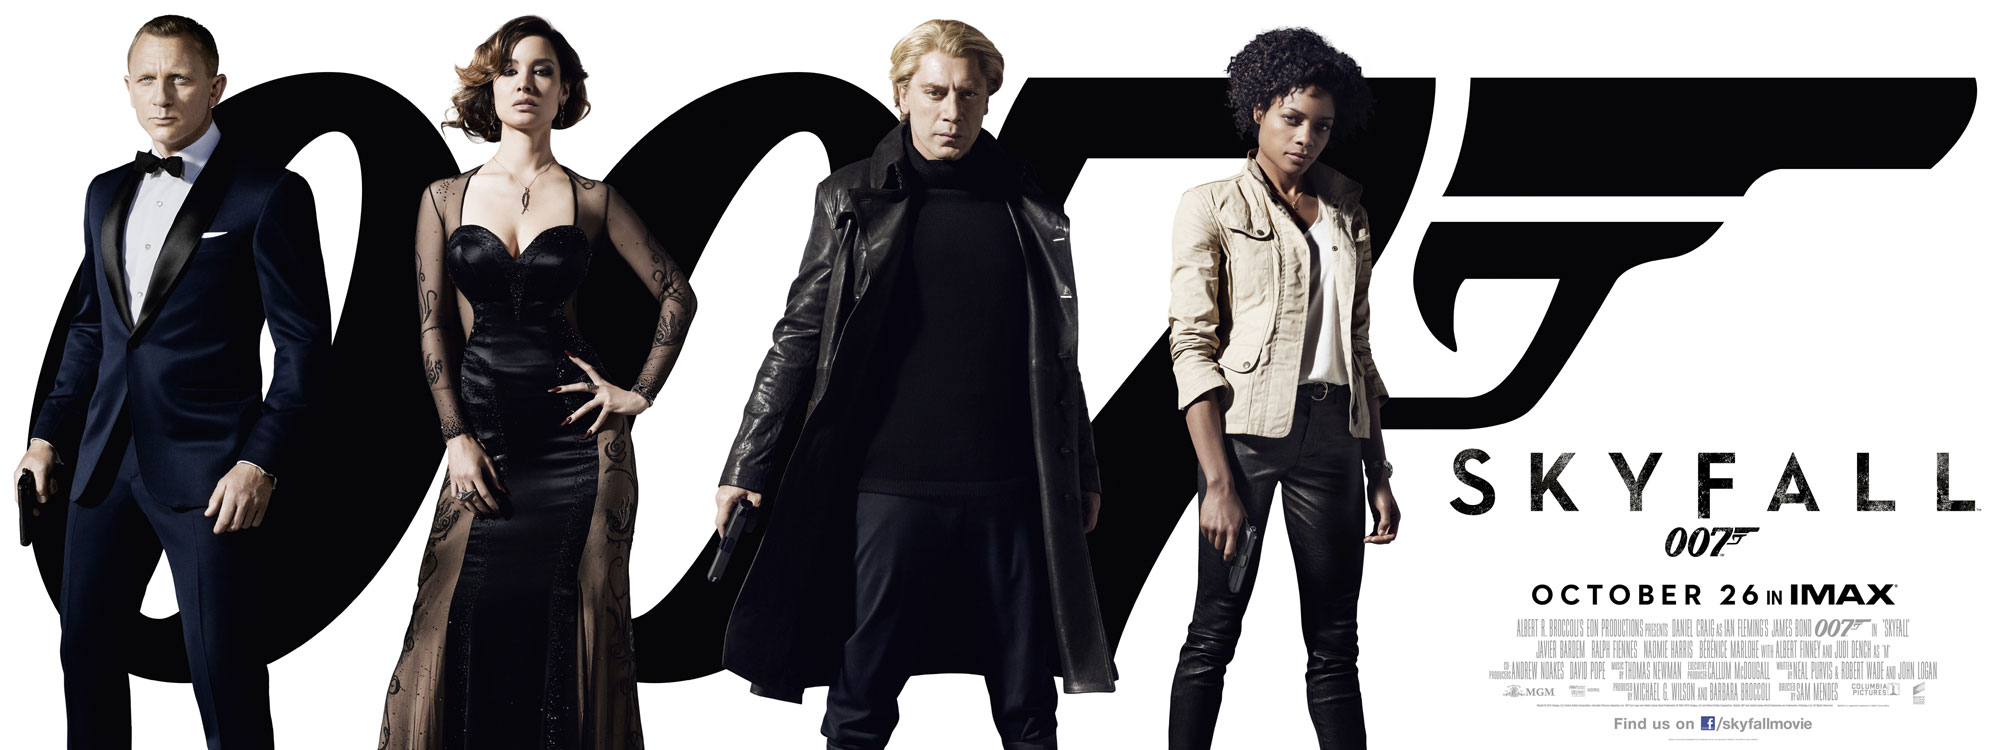 5-Skyfall-Character-Posters